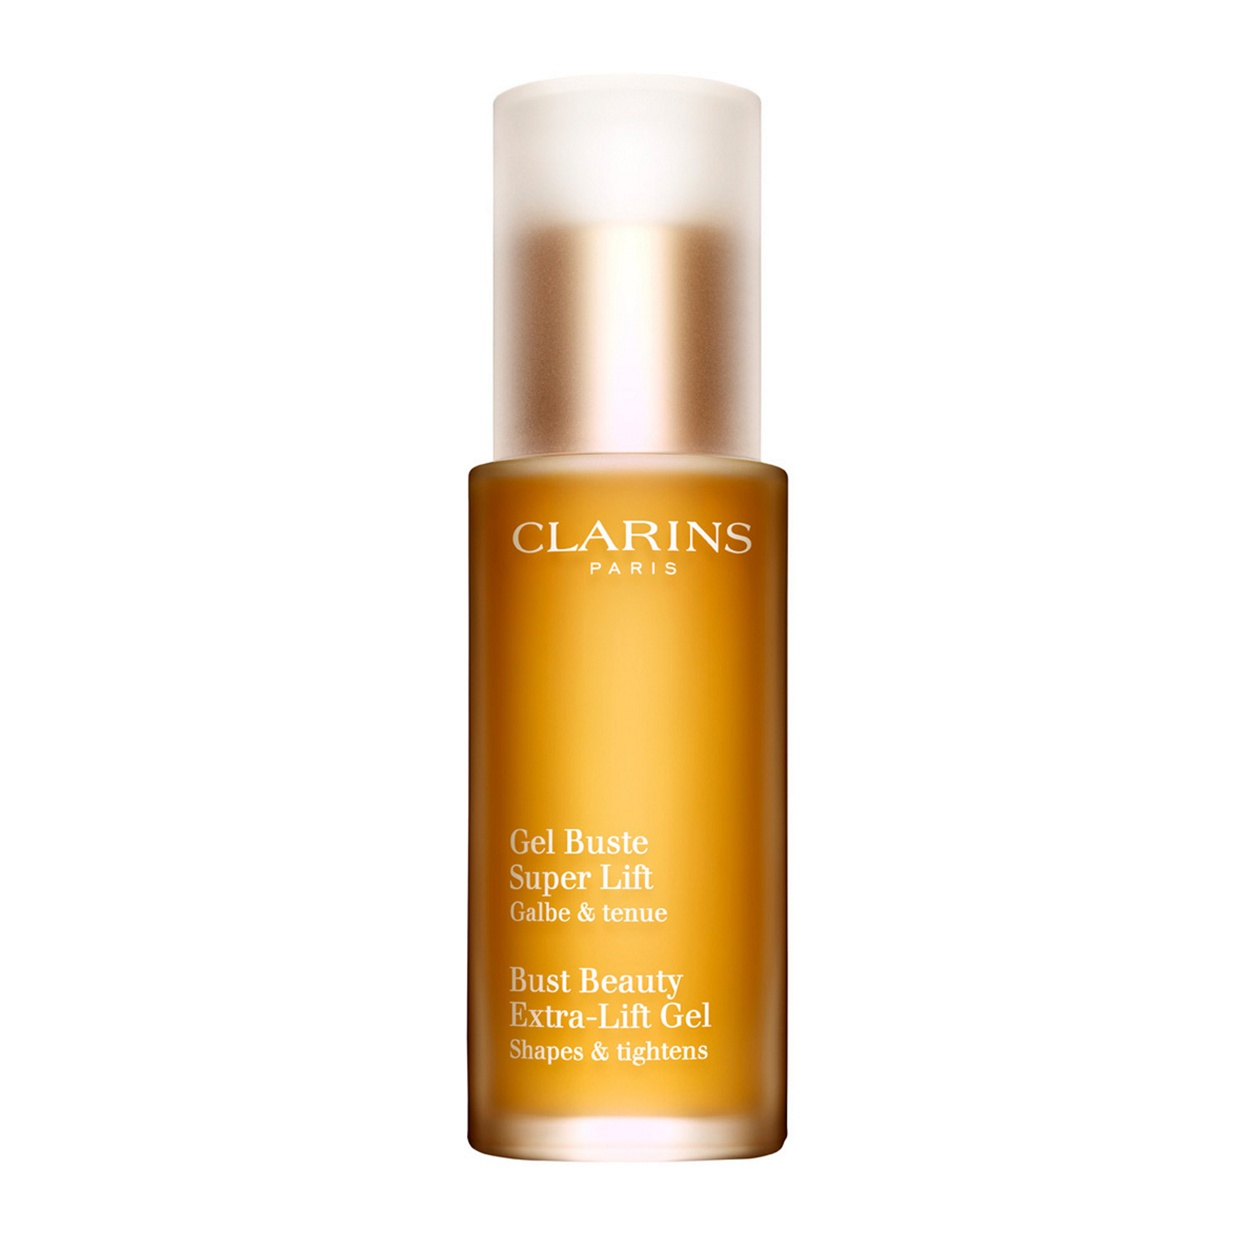 CLARINS GEL BUST BEAUTY GEL LIFTING ESCOTE Y BUSTO  50 ML